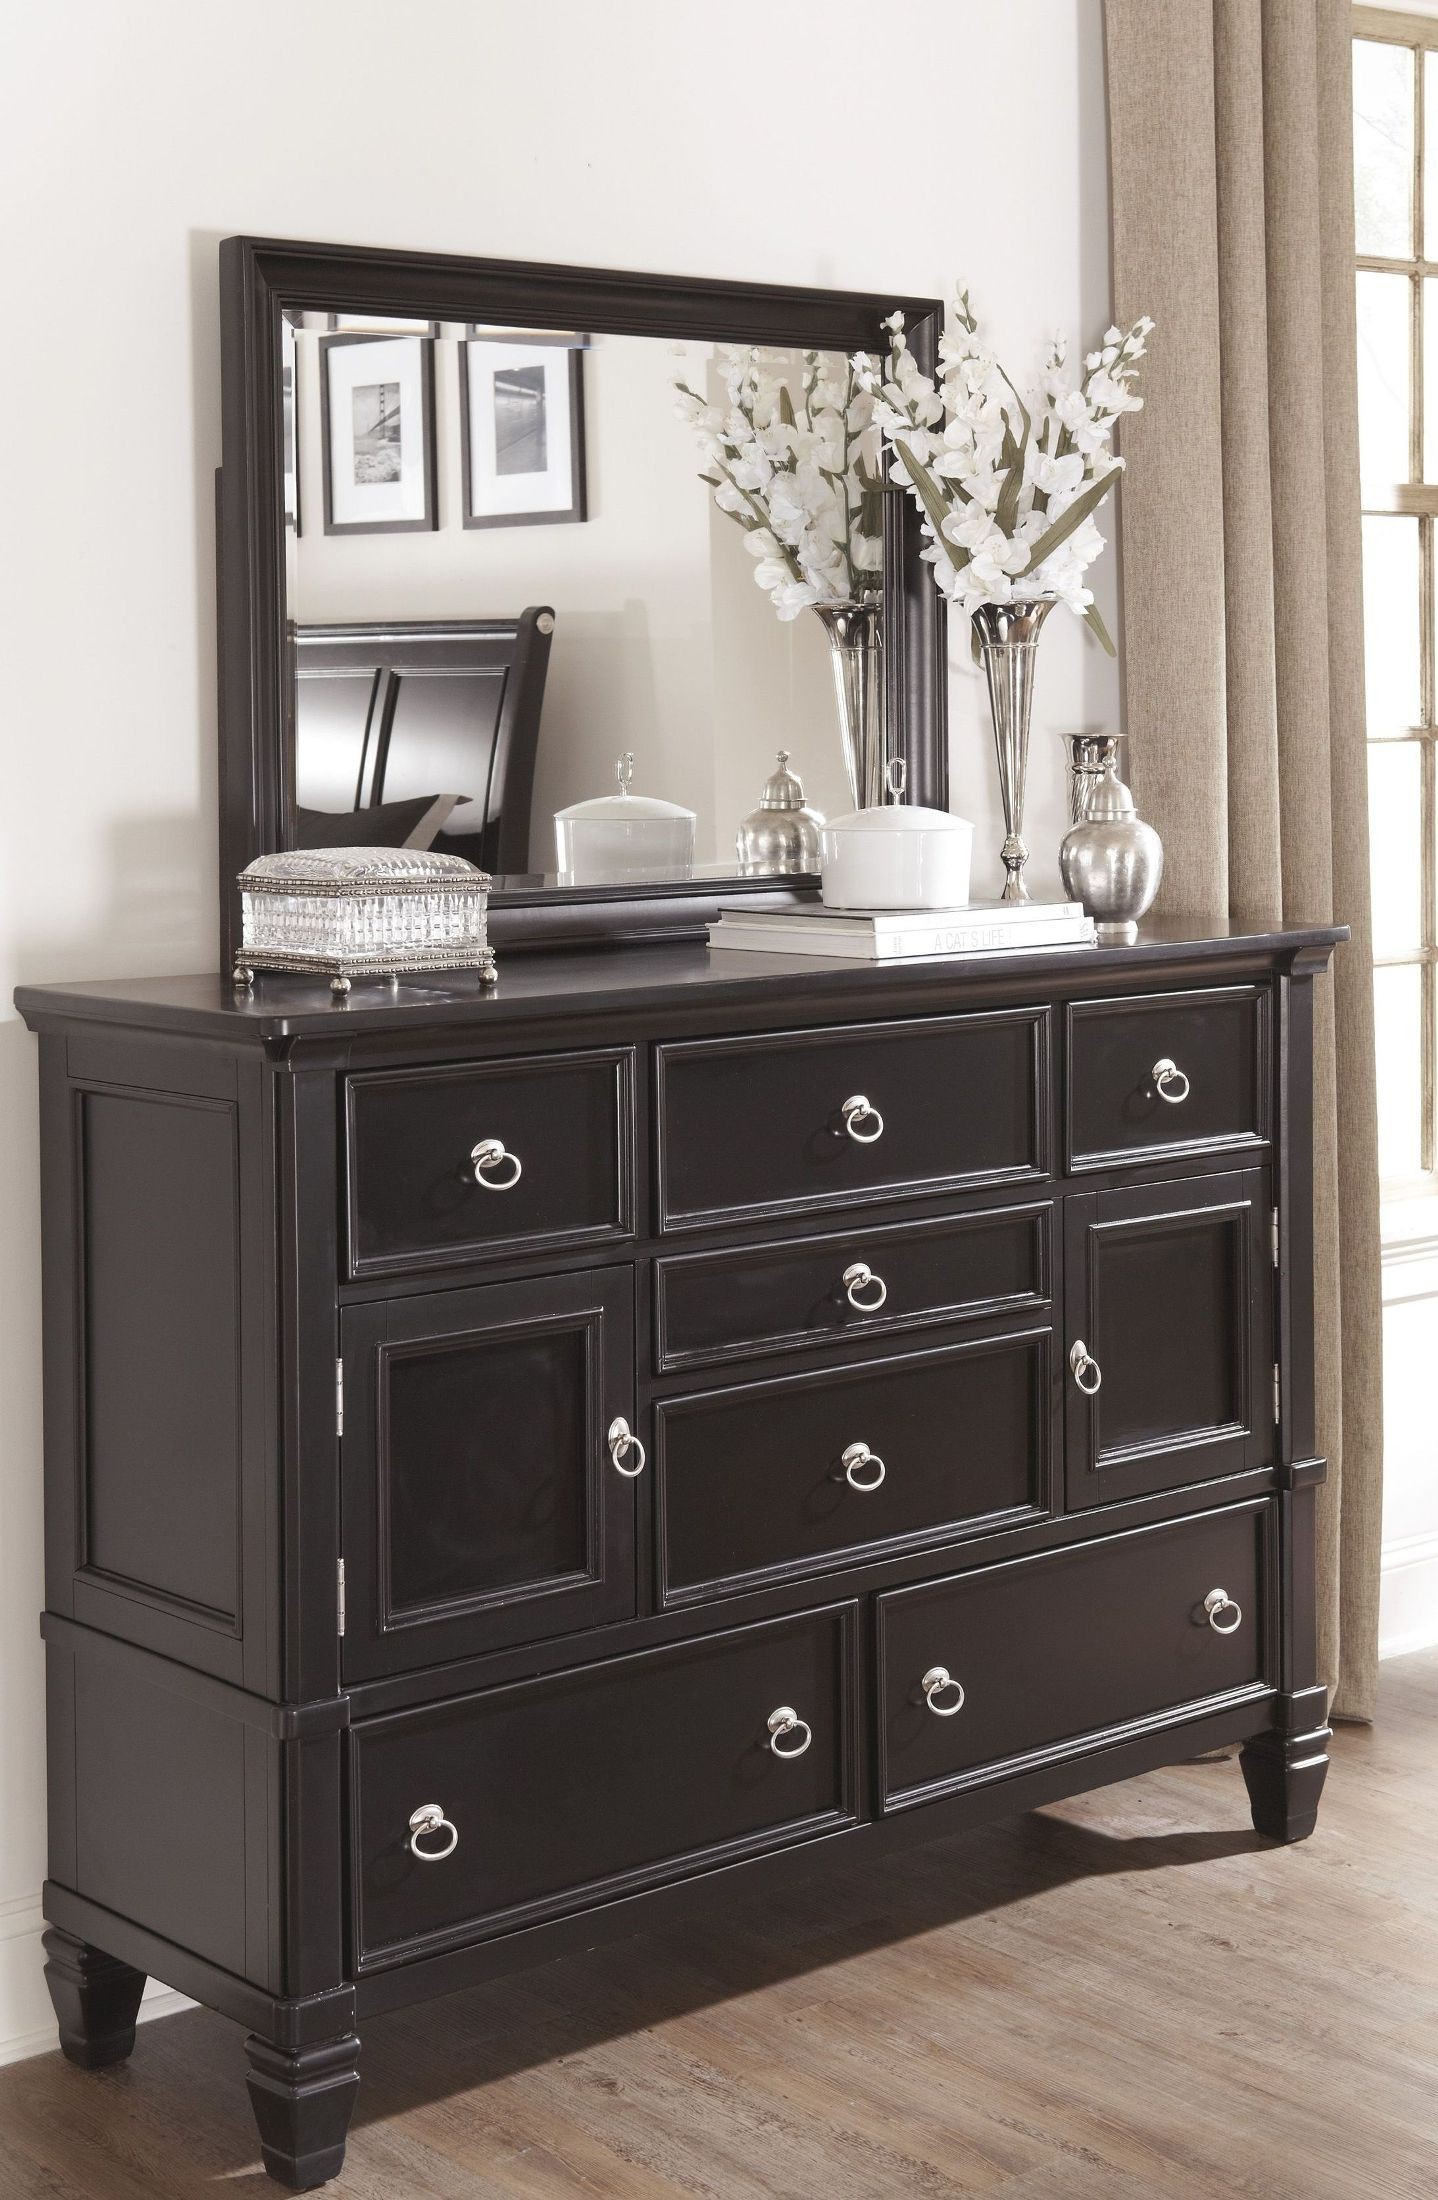 Greensburg Dresser From Ashley (B671-31)